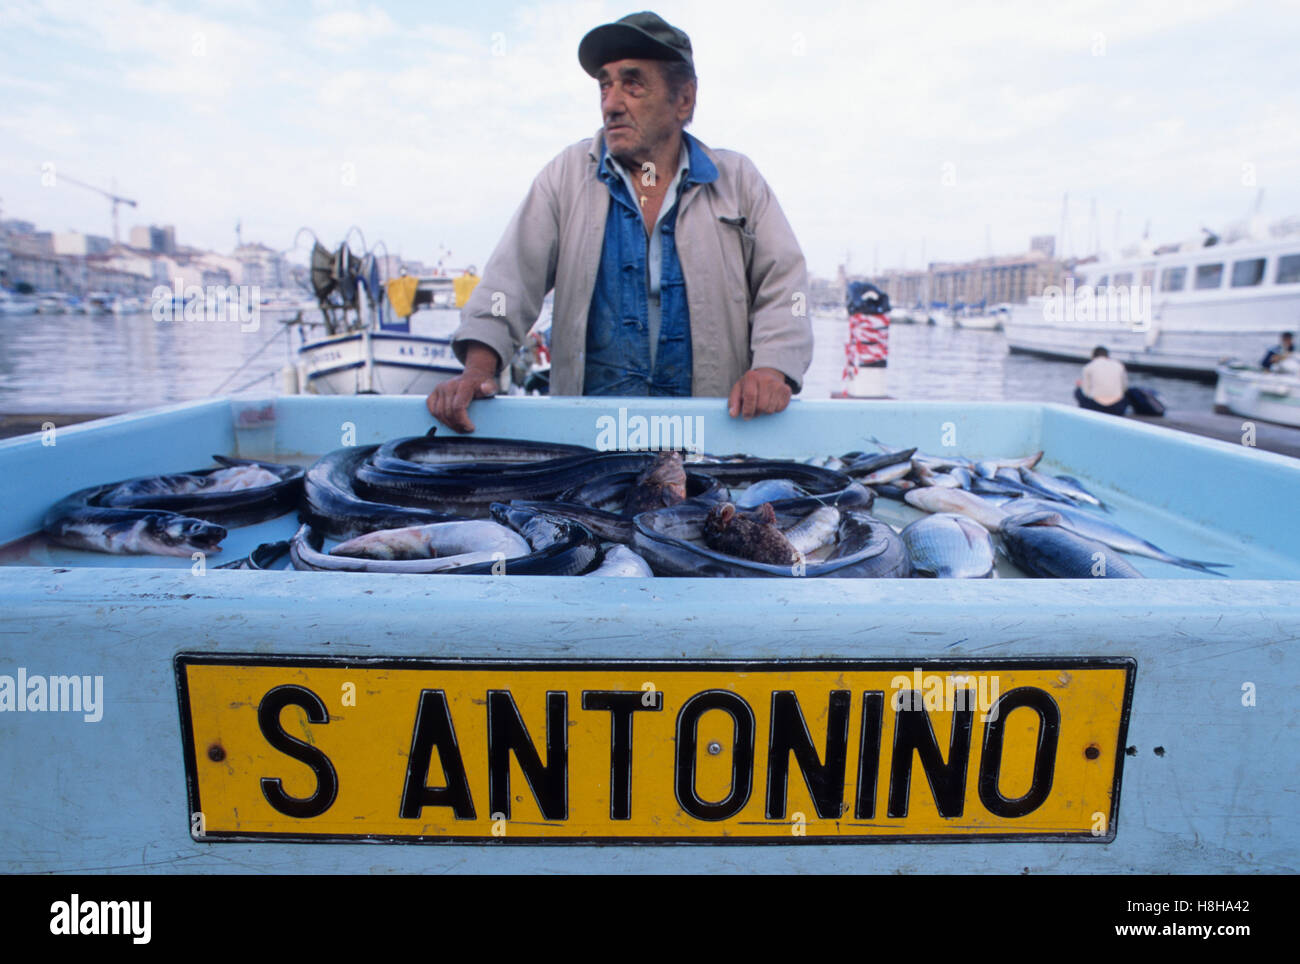 Fish monger at the port, fish, fish market, old port, Marseille, Provence, France, Europe - Stock Image